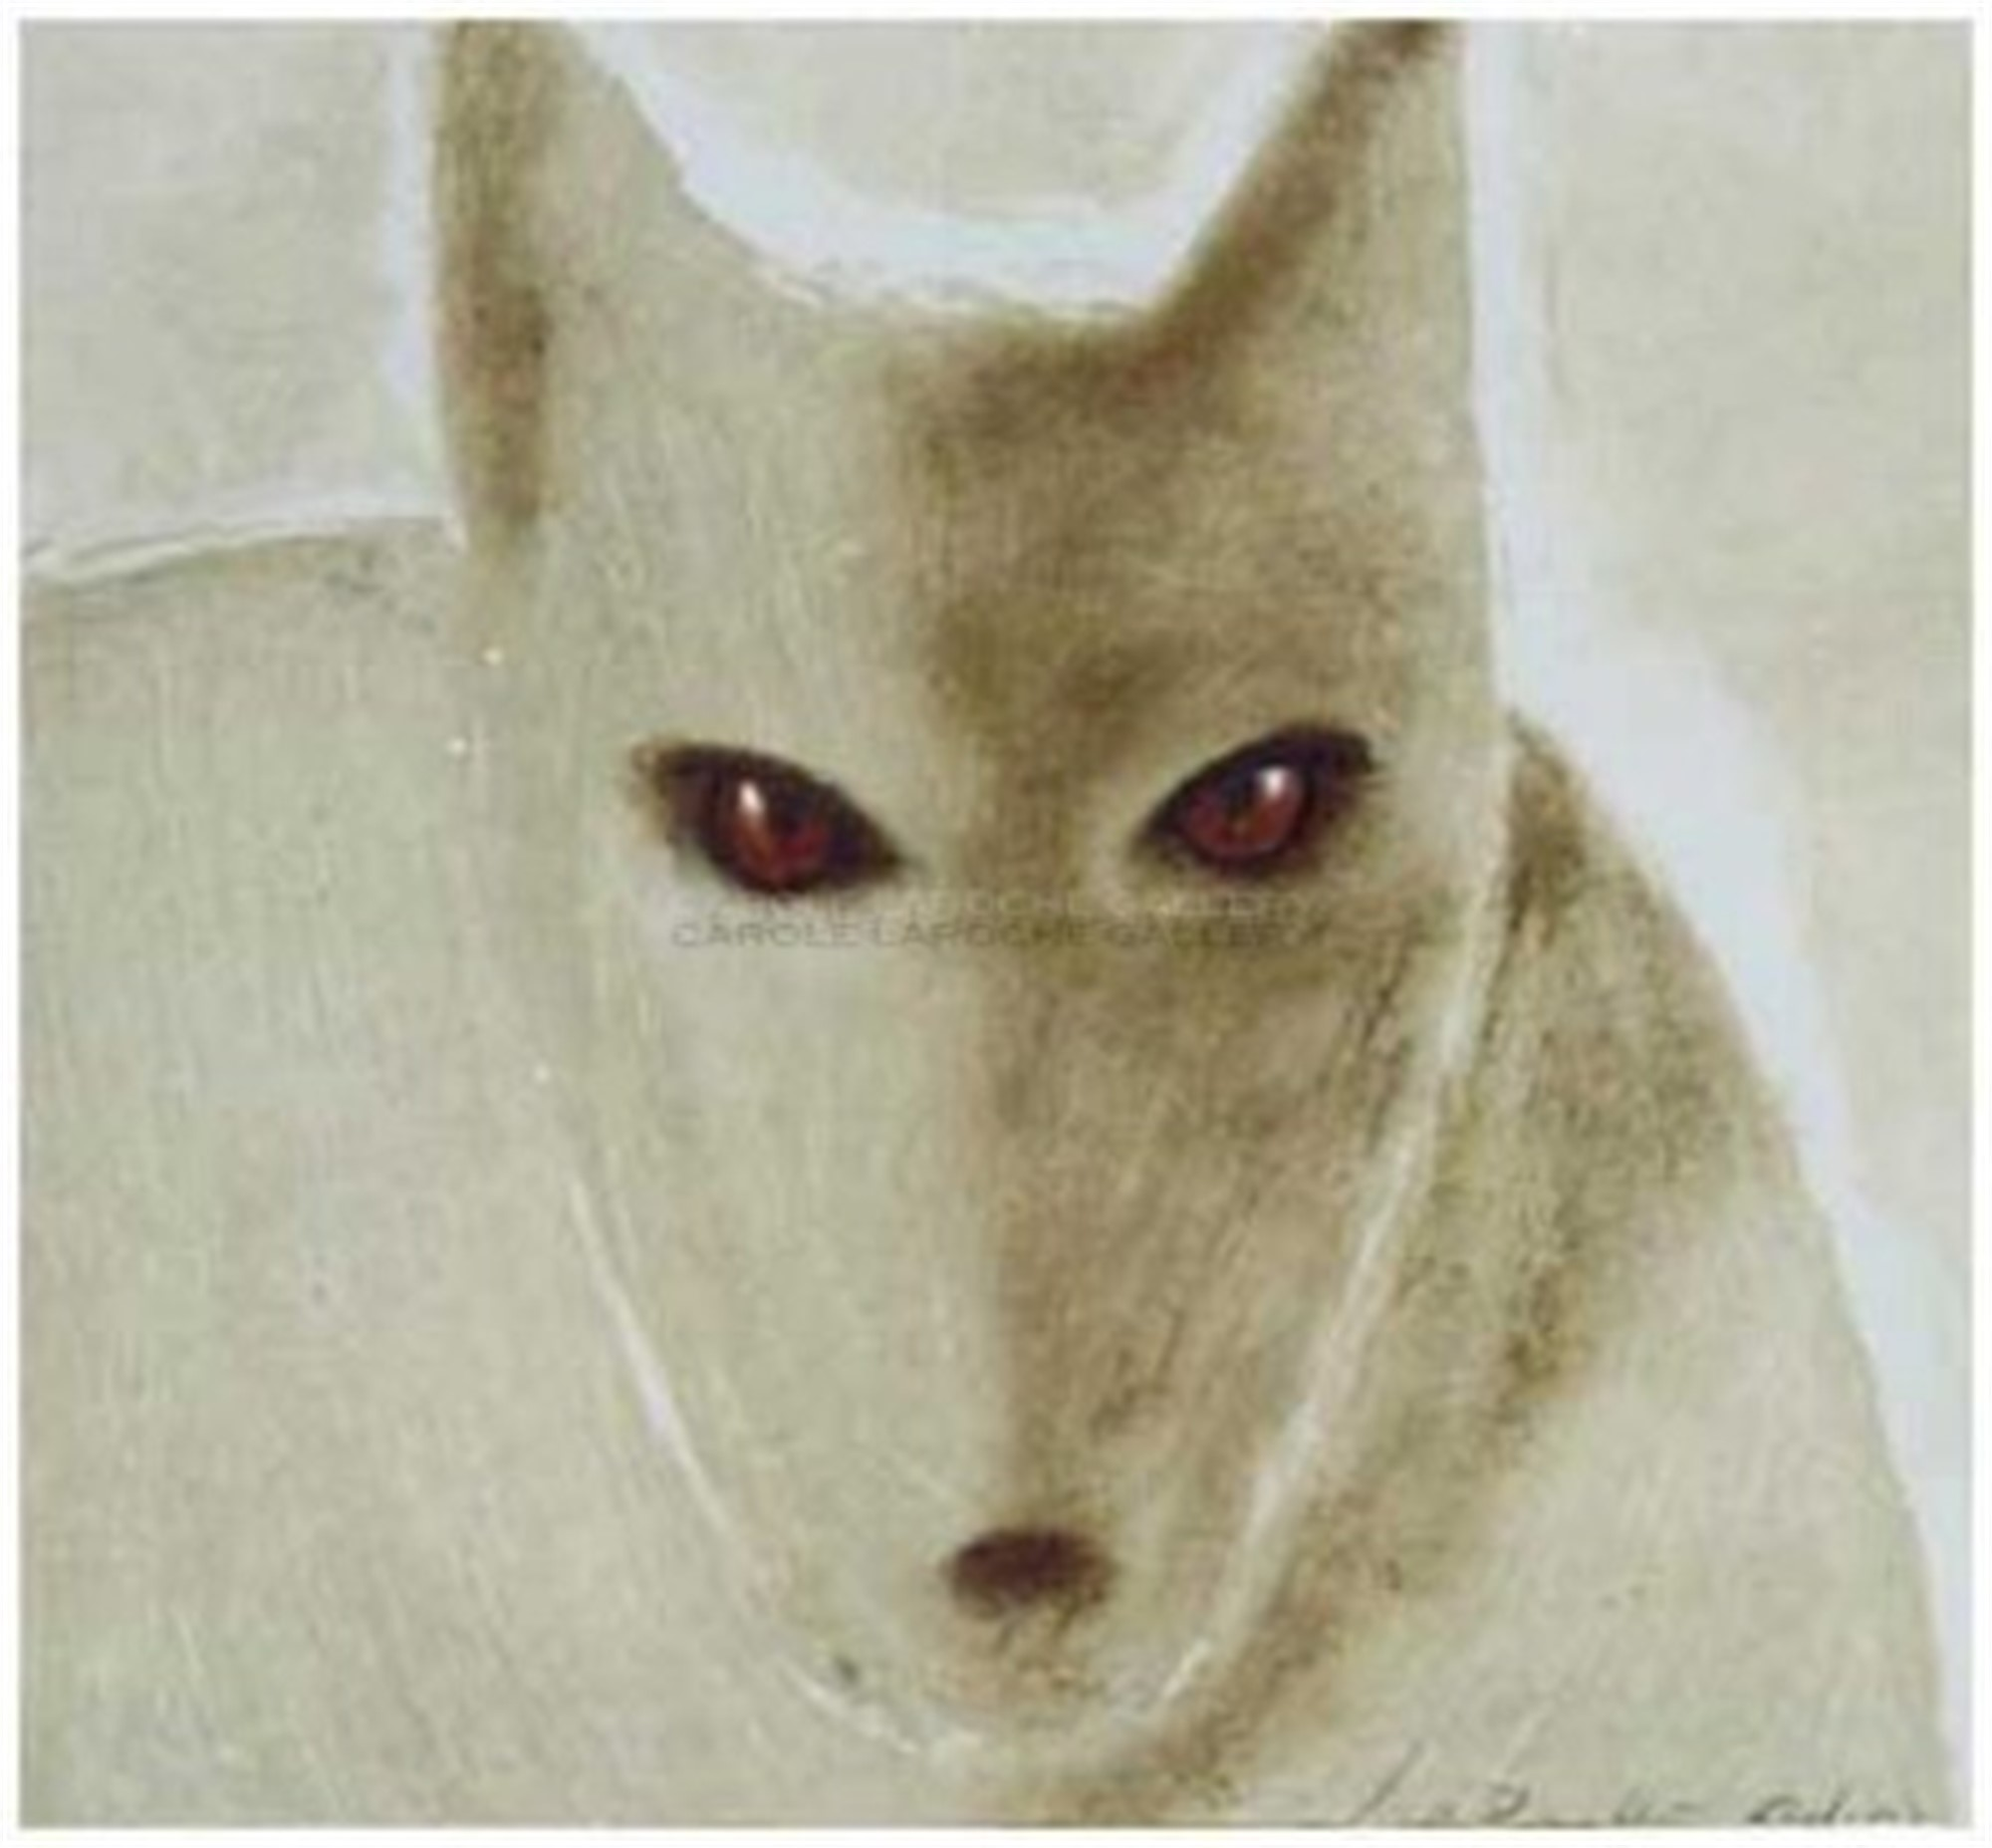 "GREY WOLF - limited edition giclee on paper w/frame size of 21""x21"" by Carole LaRoche"